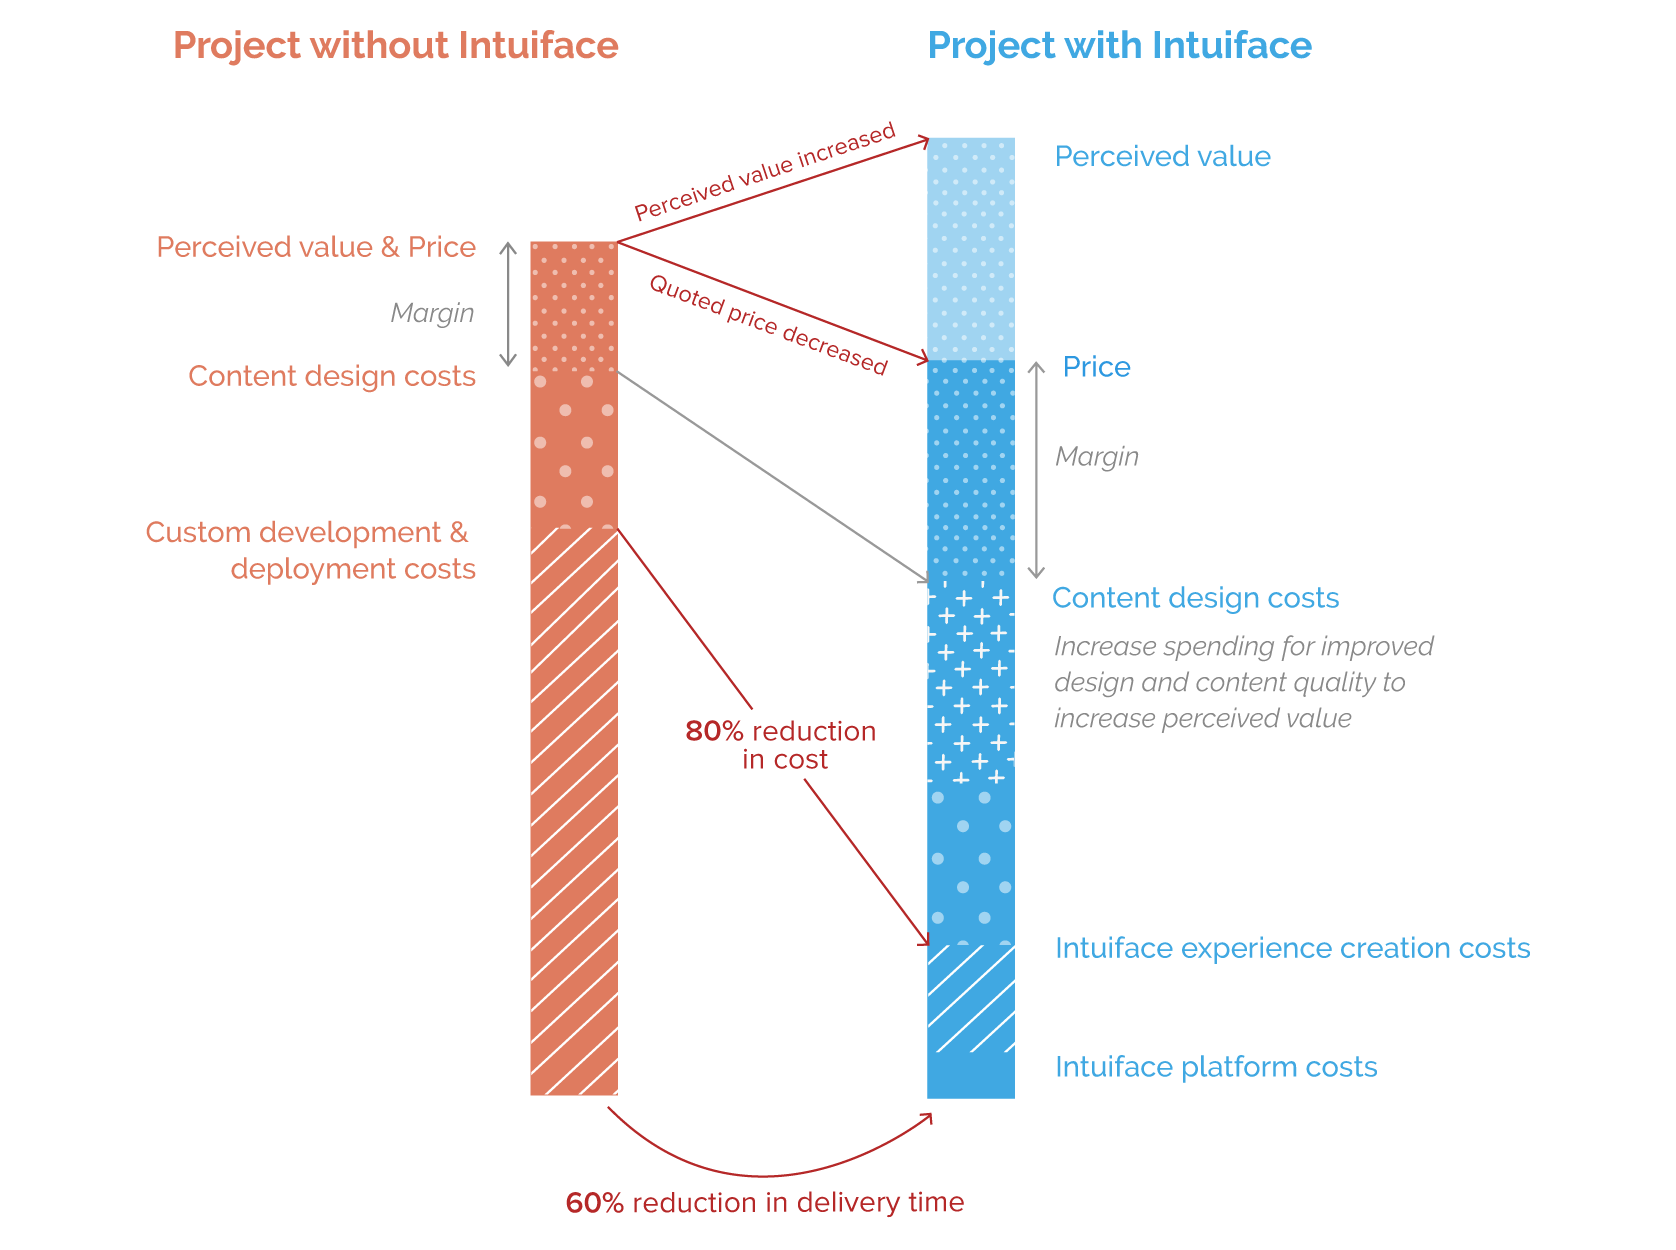 The business value of a project perceived by using Intuiface